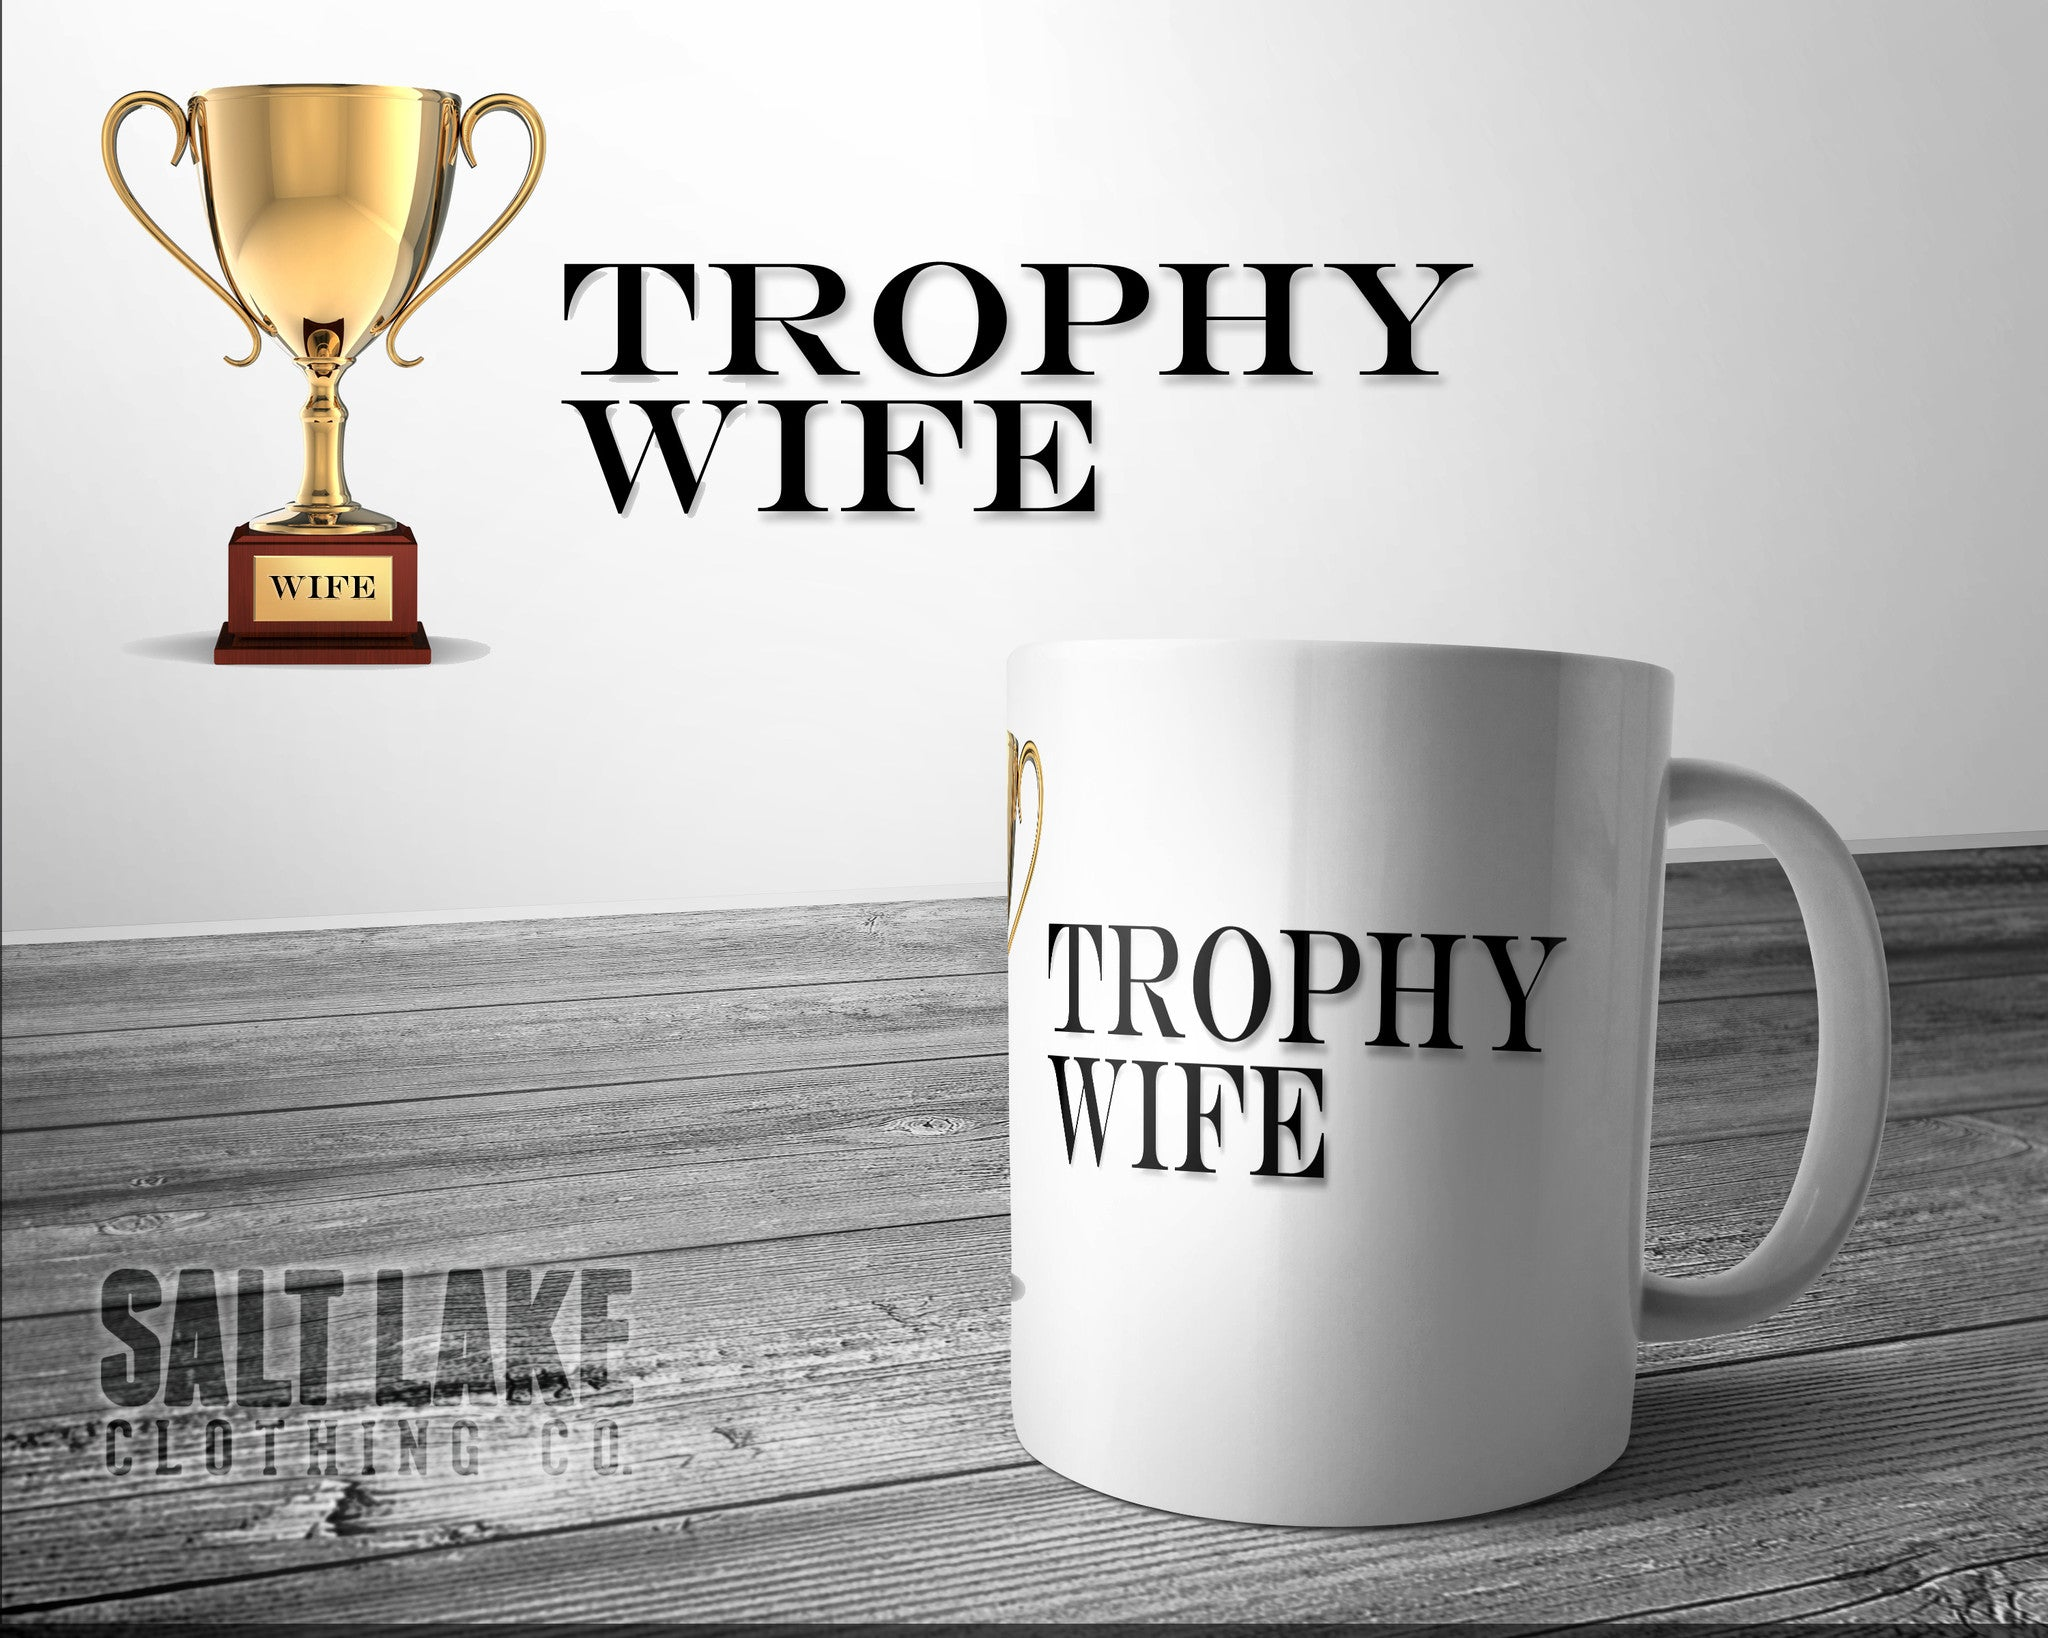 Trophy Wife Ceramic 11 0z. Coffee Mug